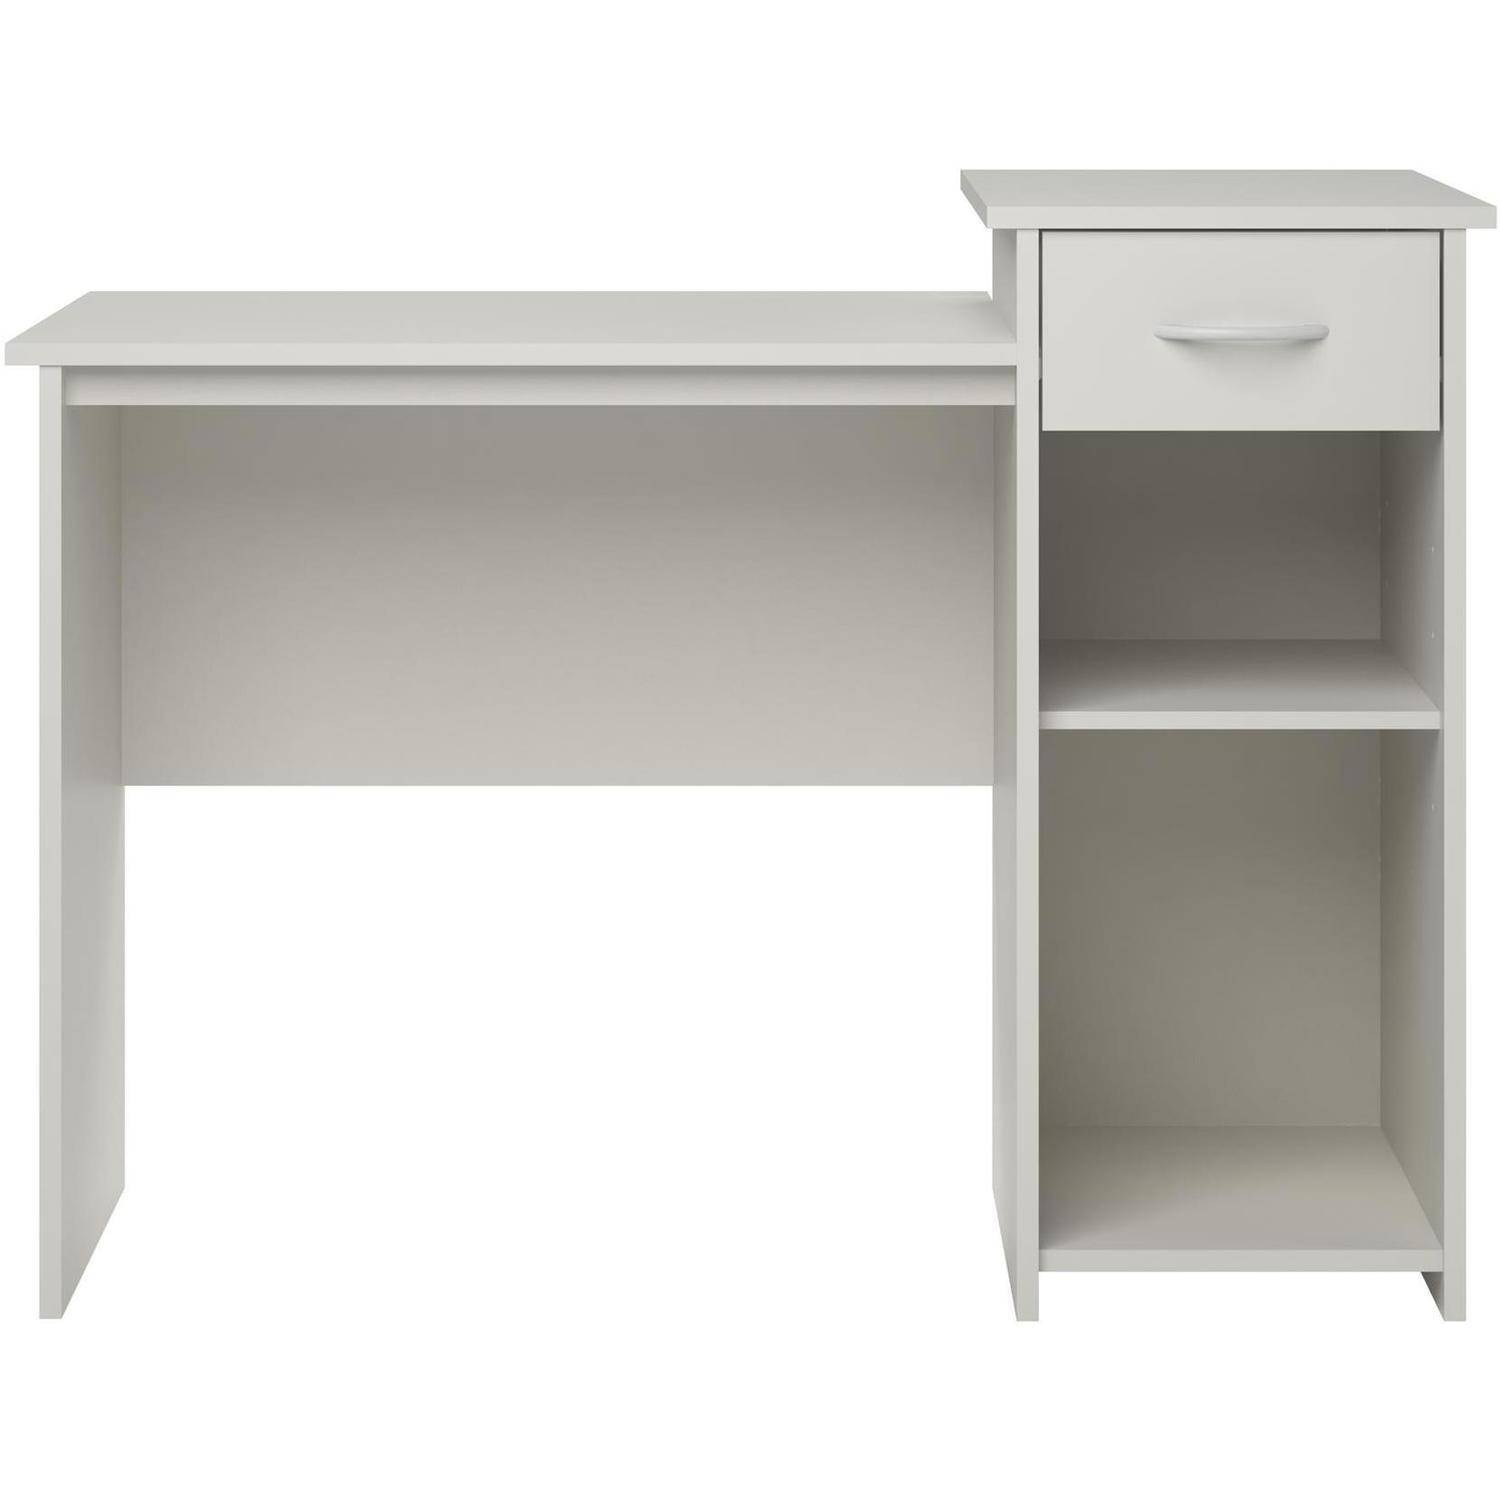 Mainstays Student Desk with Easy-glide Drawer, White Finish